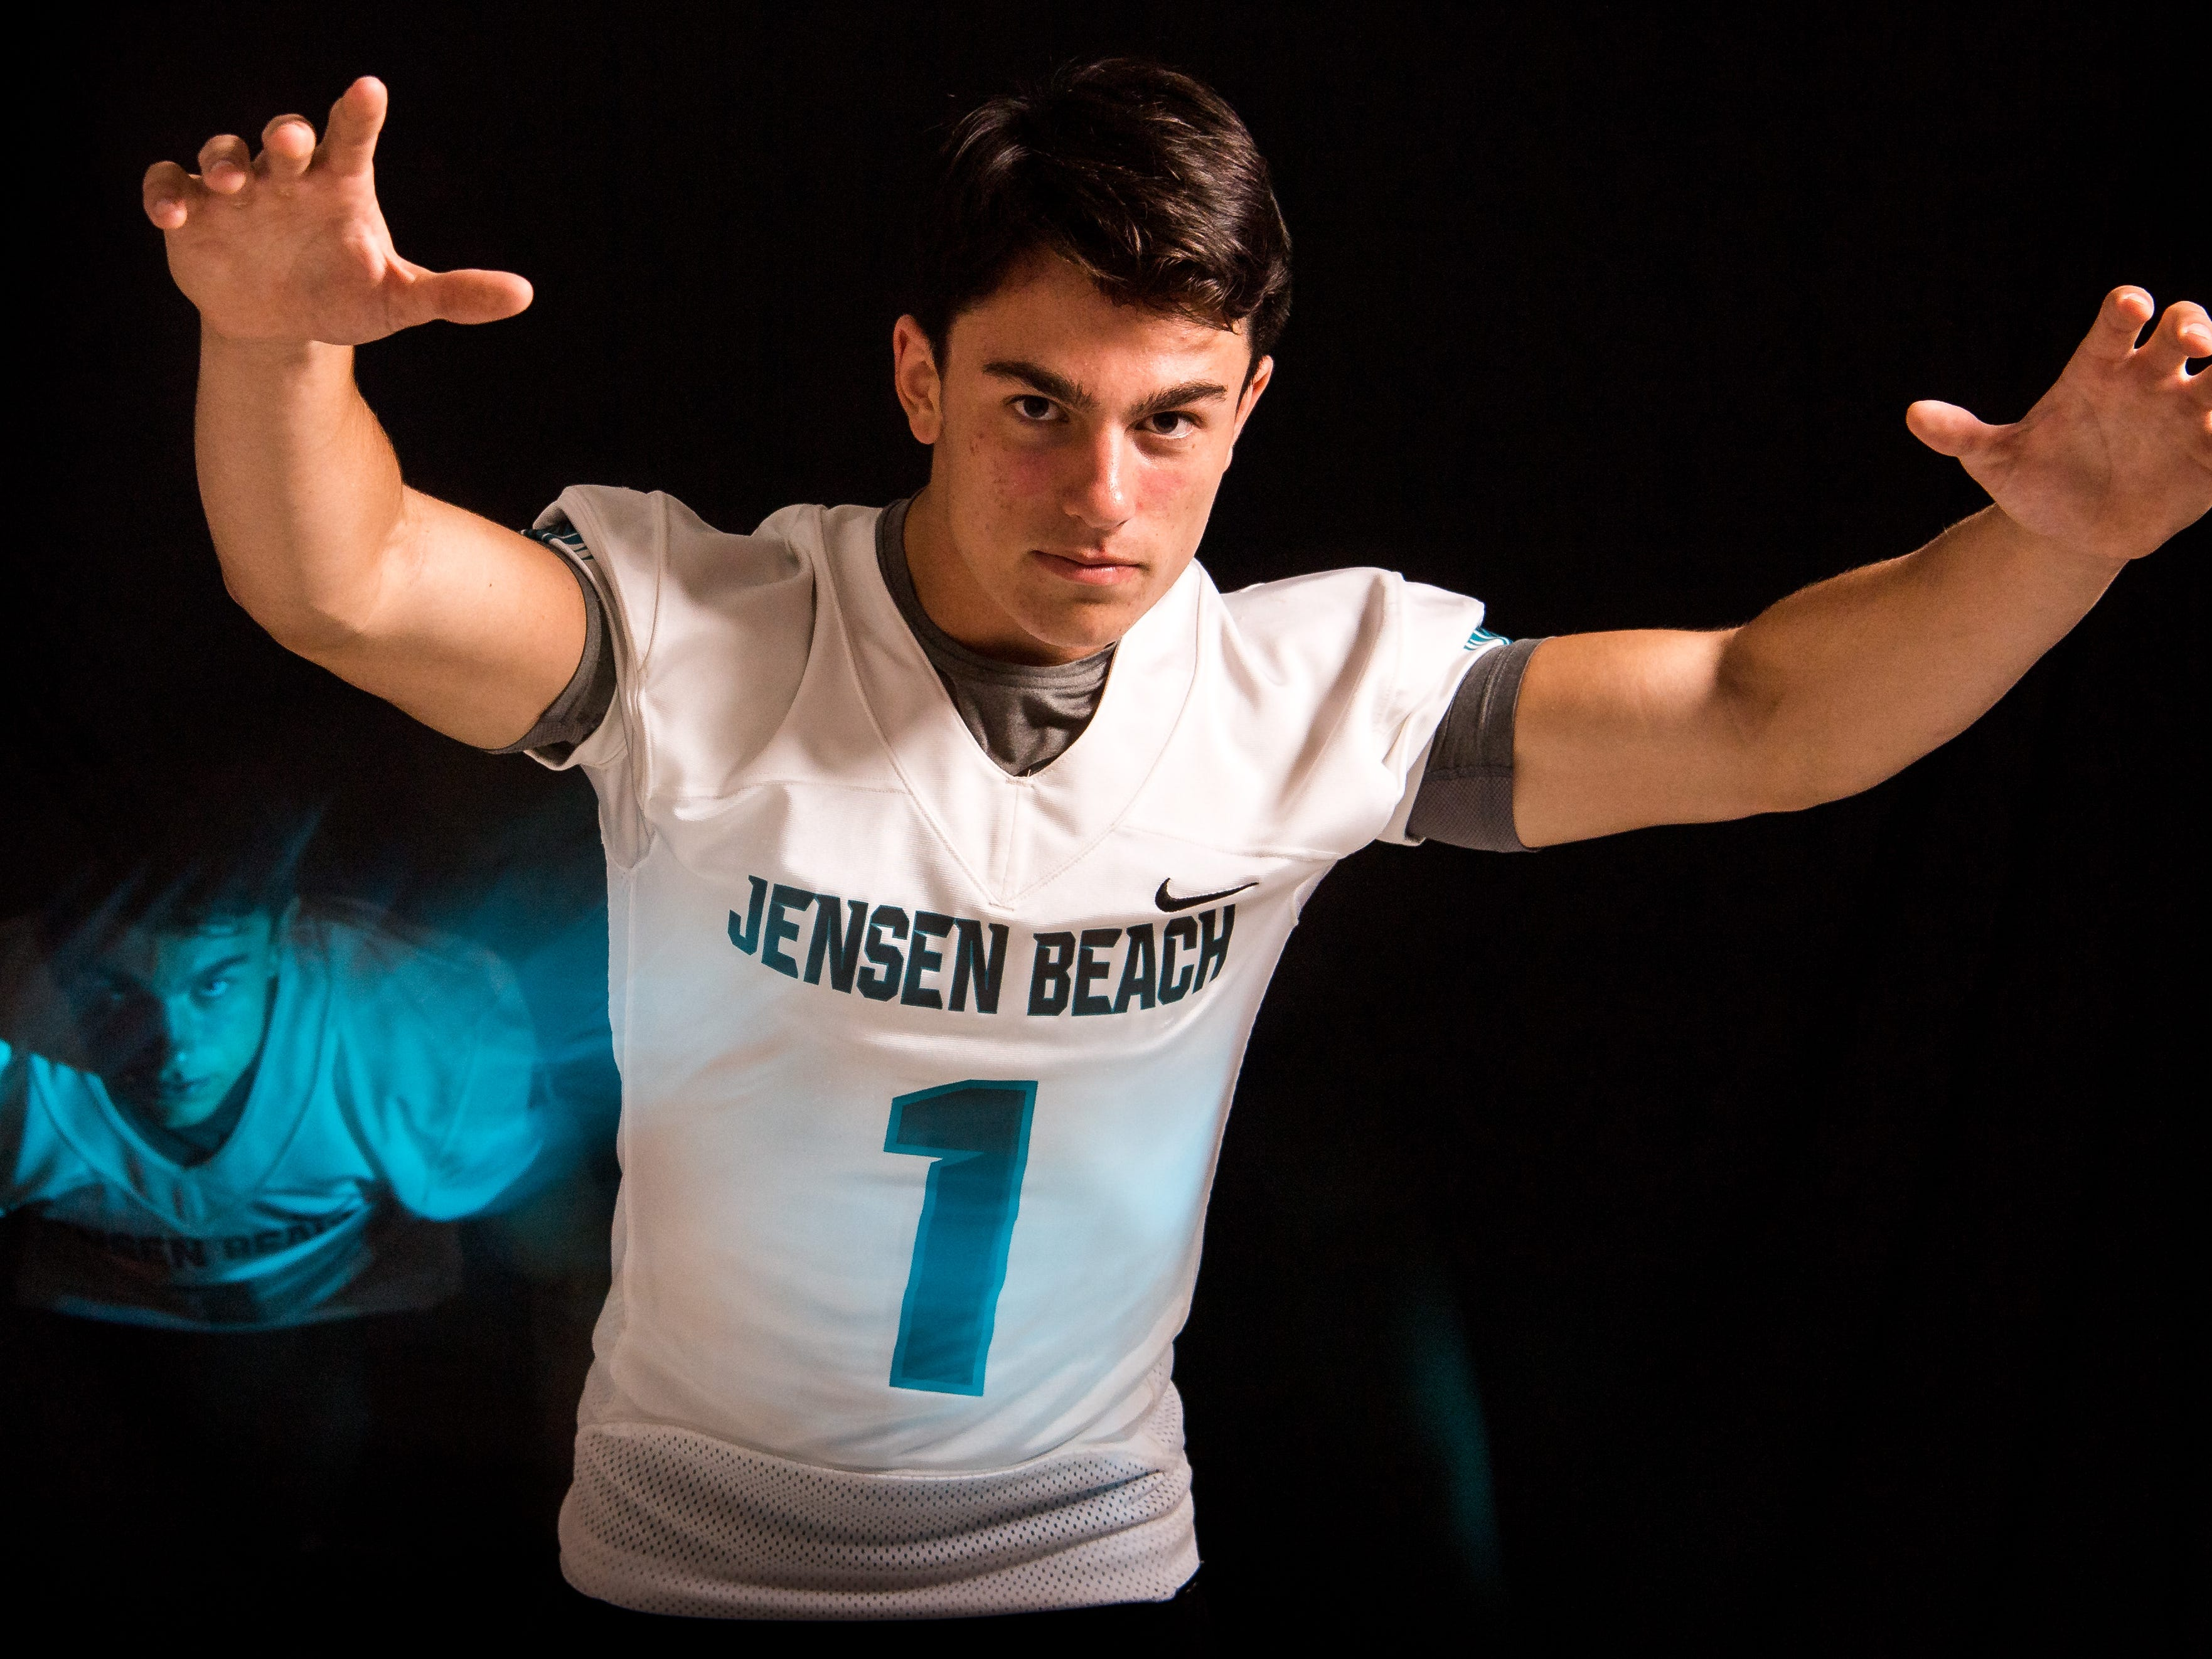 Liam Zaccheo, safety for Jensen Beach High School football, is photographed Thursday, April 4, 2019, at TCPalm in Stuart.